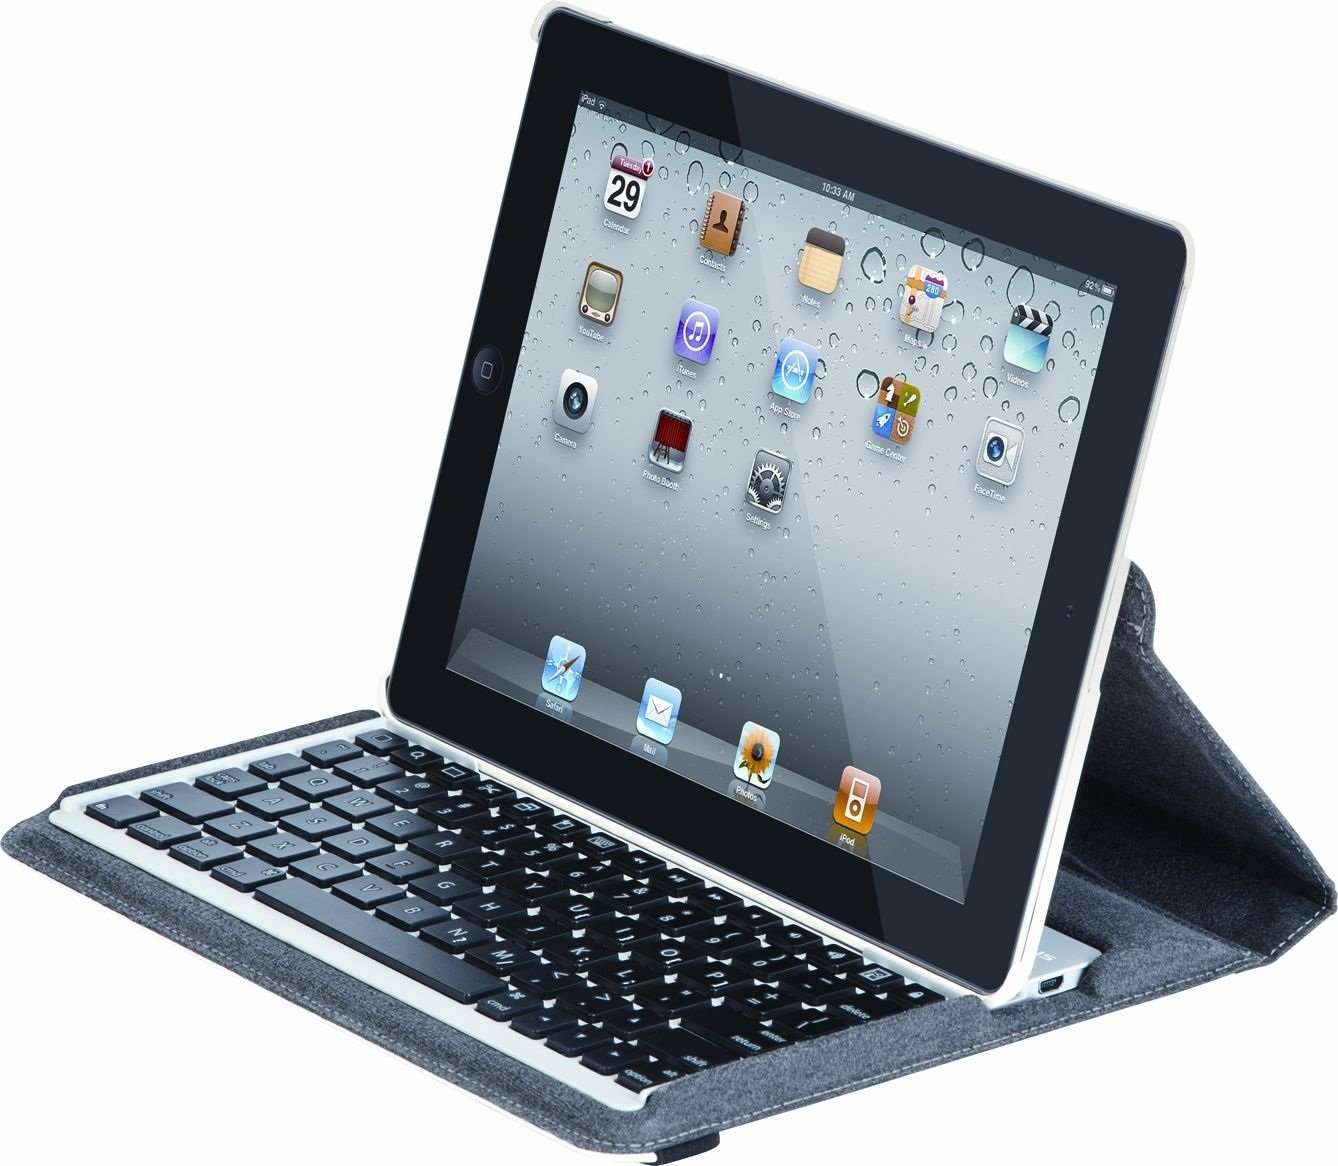 Targus Versavu Rotating Keyboard Case and Stand for iPad 3 and 4, Bone White (THZ171US) by Targus (Image #8)